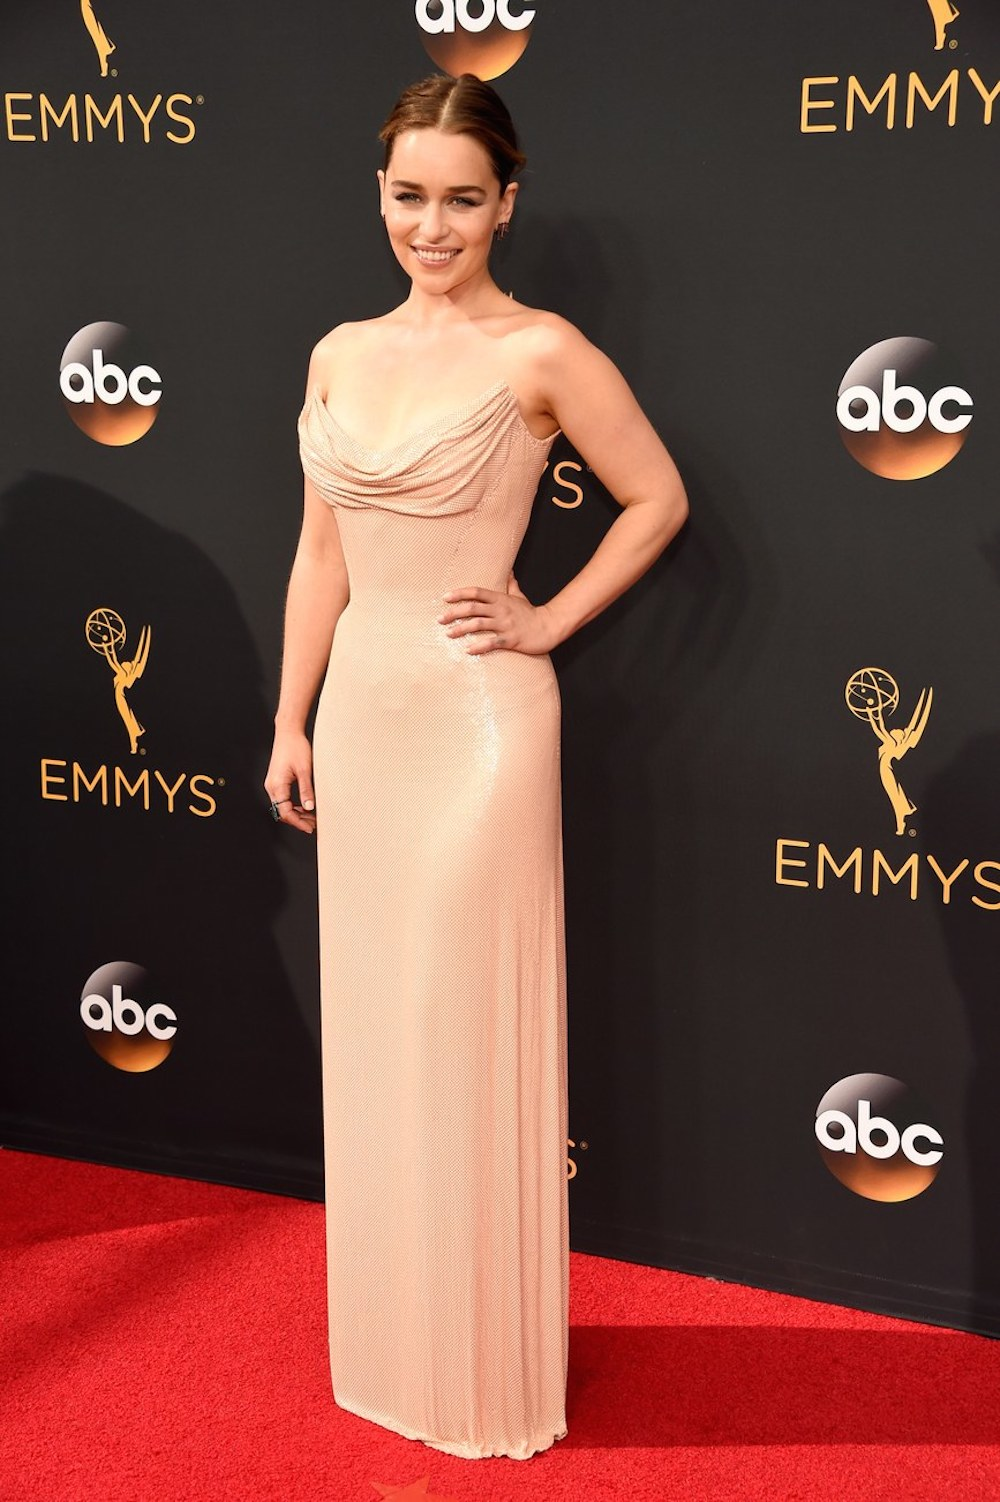 Emilia Clarke in Atelier Versace at the 2016 Emmy Awards. Image courtesy of Kevin Mazur/Getty.